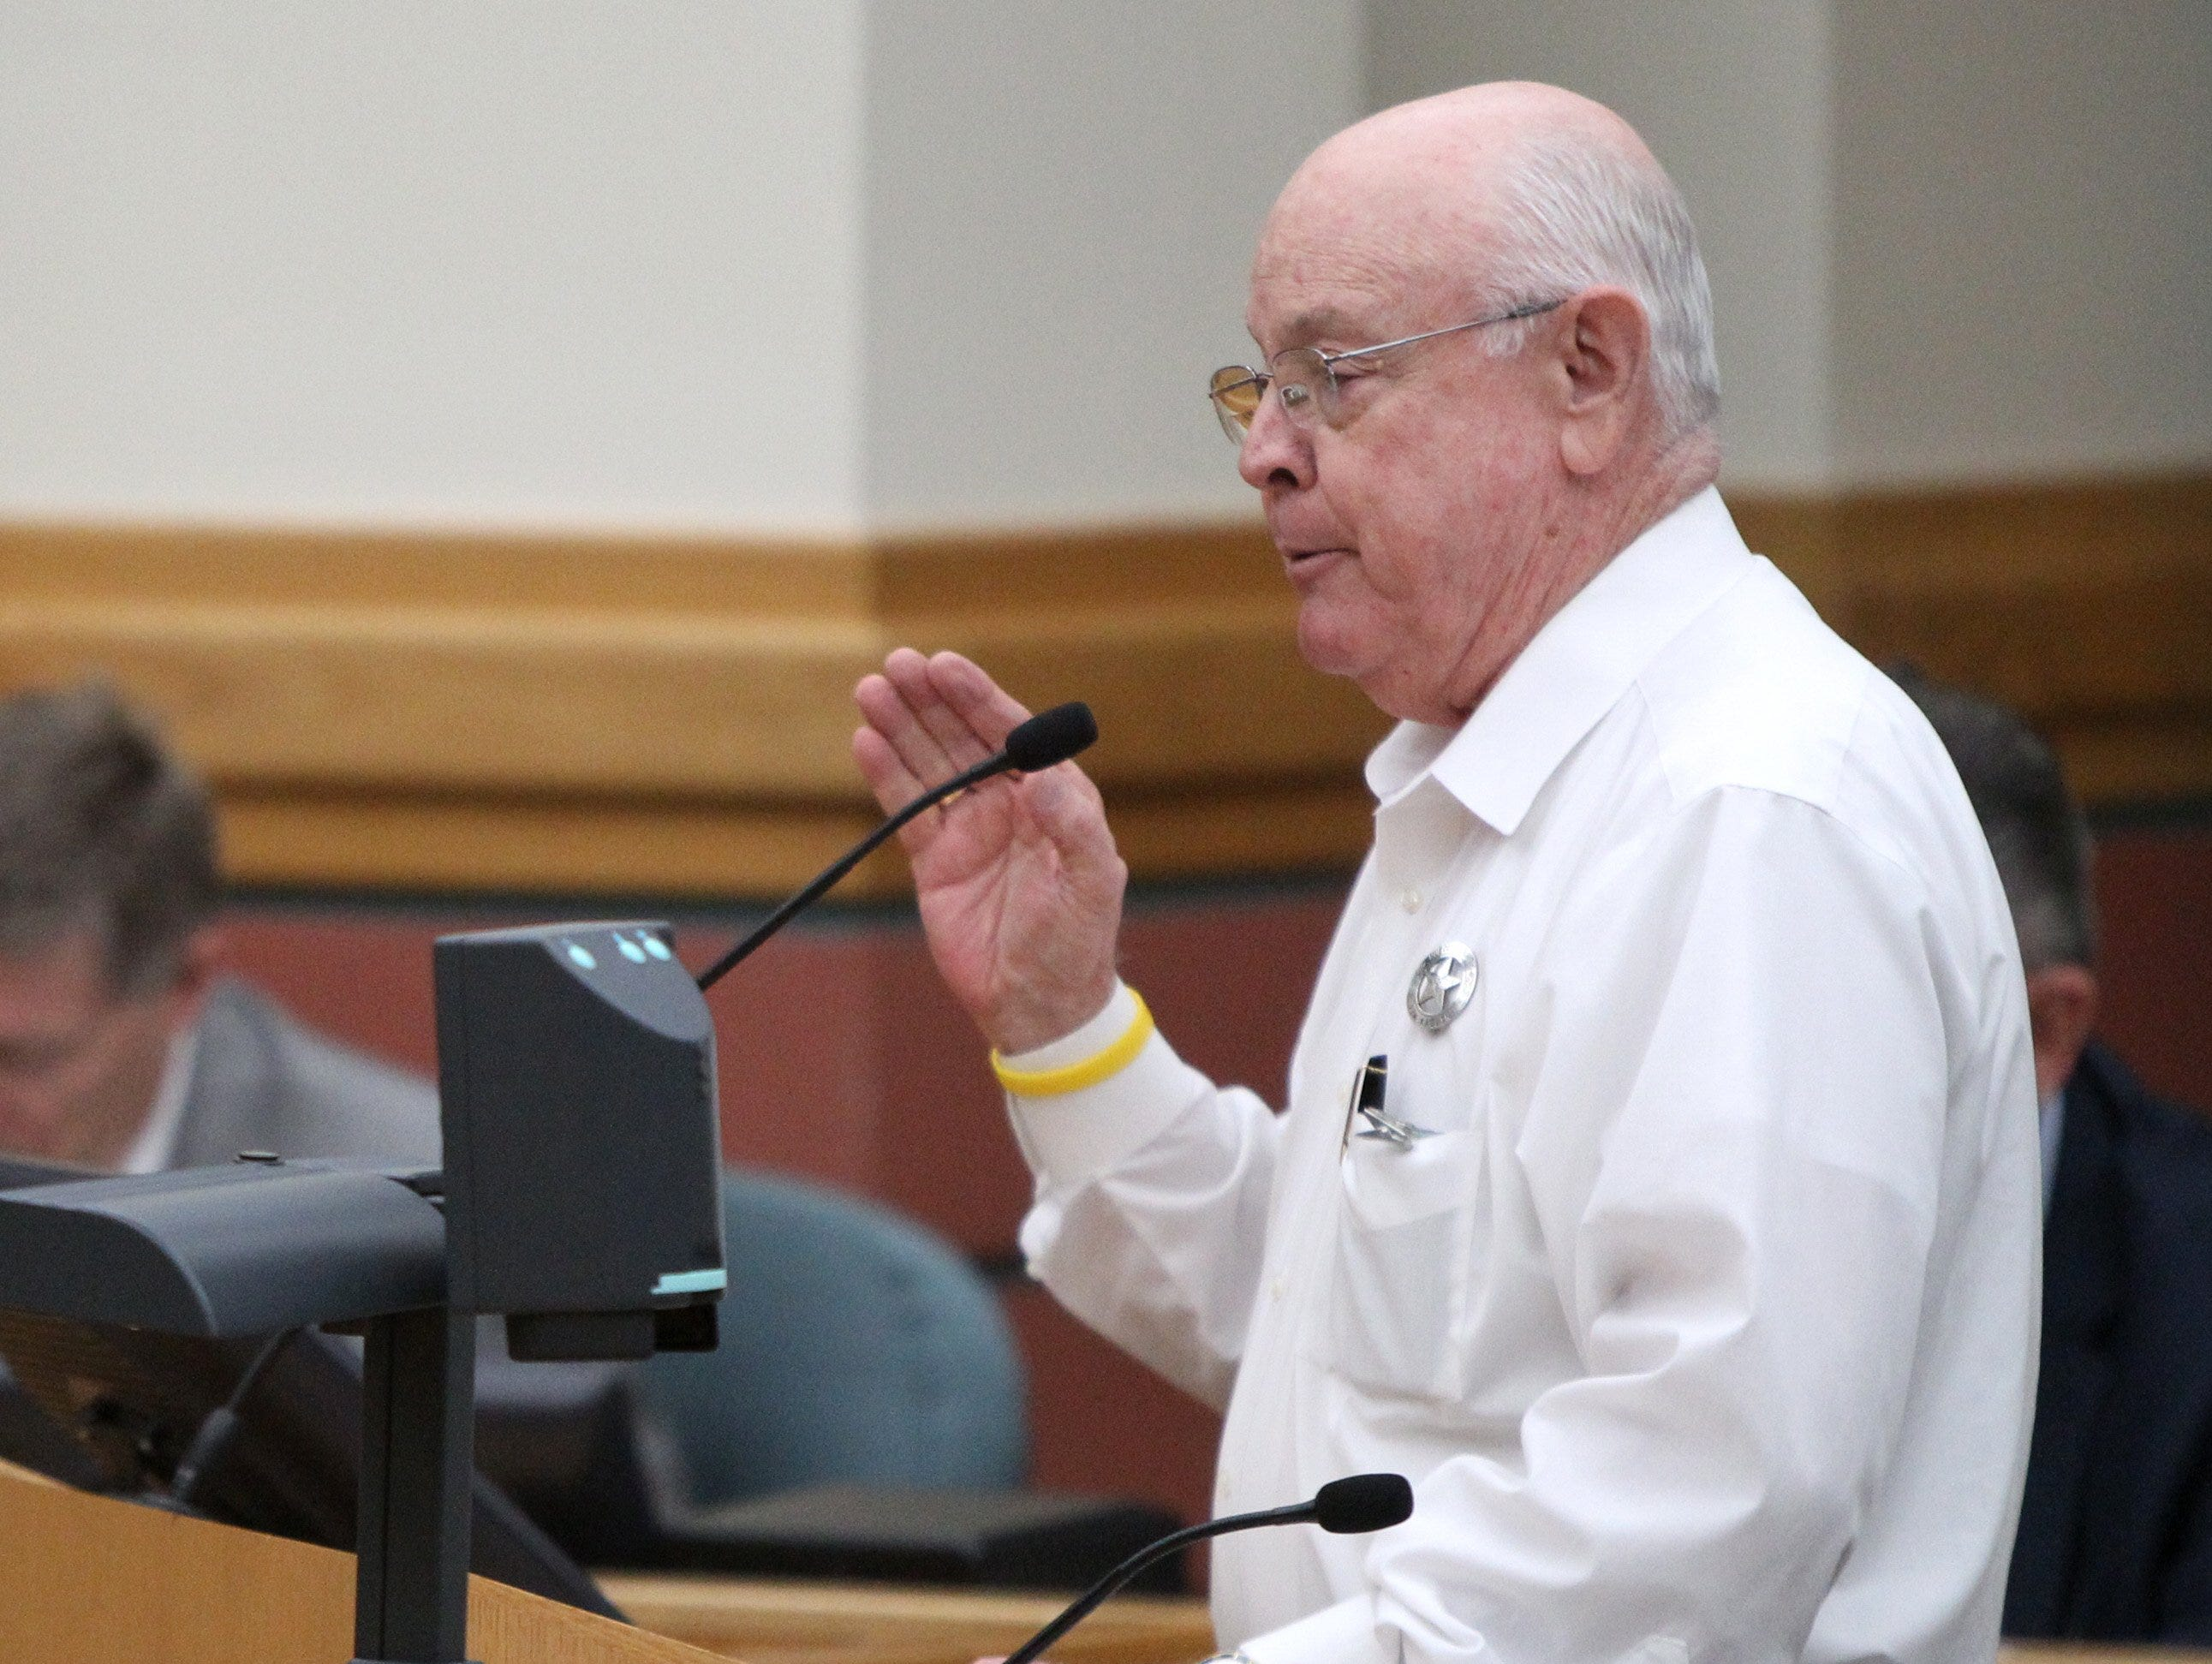 Rachel Denny Clow/Caller-TimesJim Kaelin, Nueces County Sheriff, speaks against the rezoning of an area on the Southside to allow for a family entertainment center to be built during the City Council meeting on Tuesday, May 13, 2014.